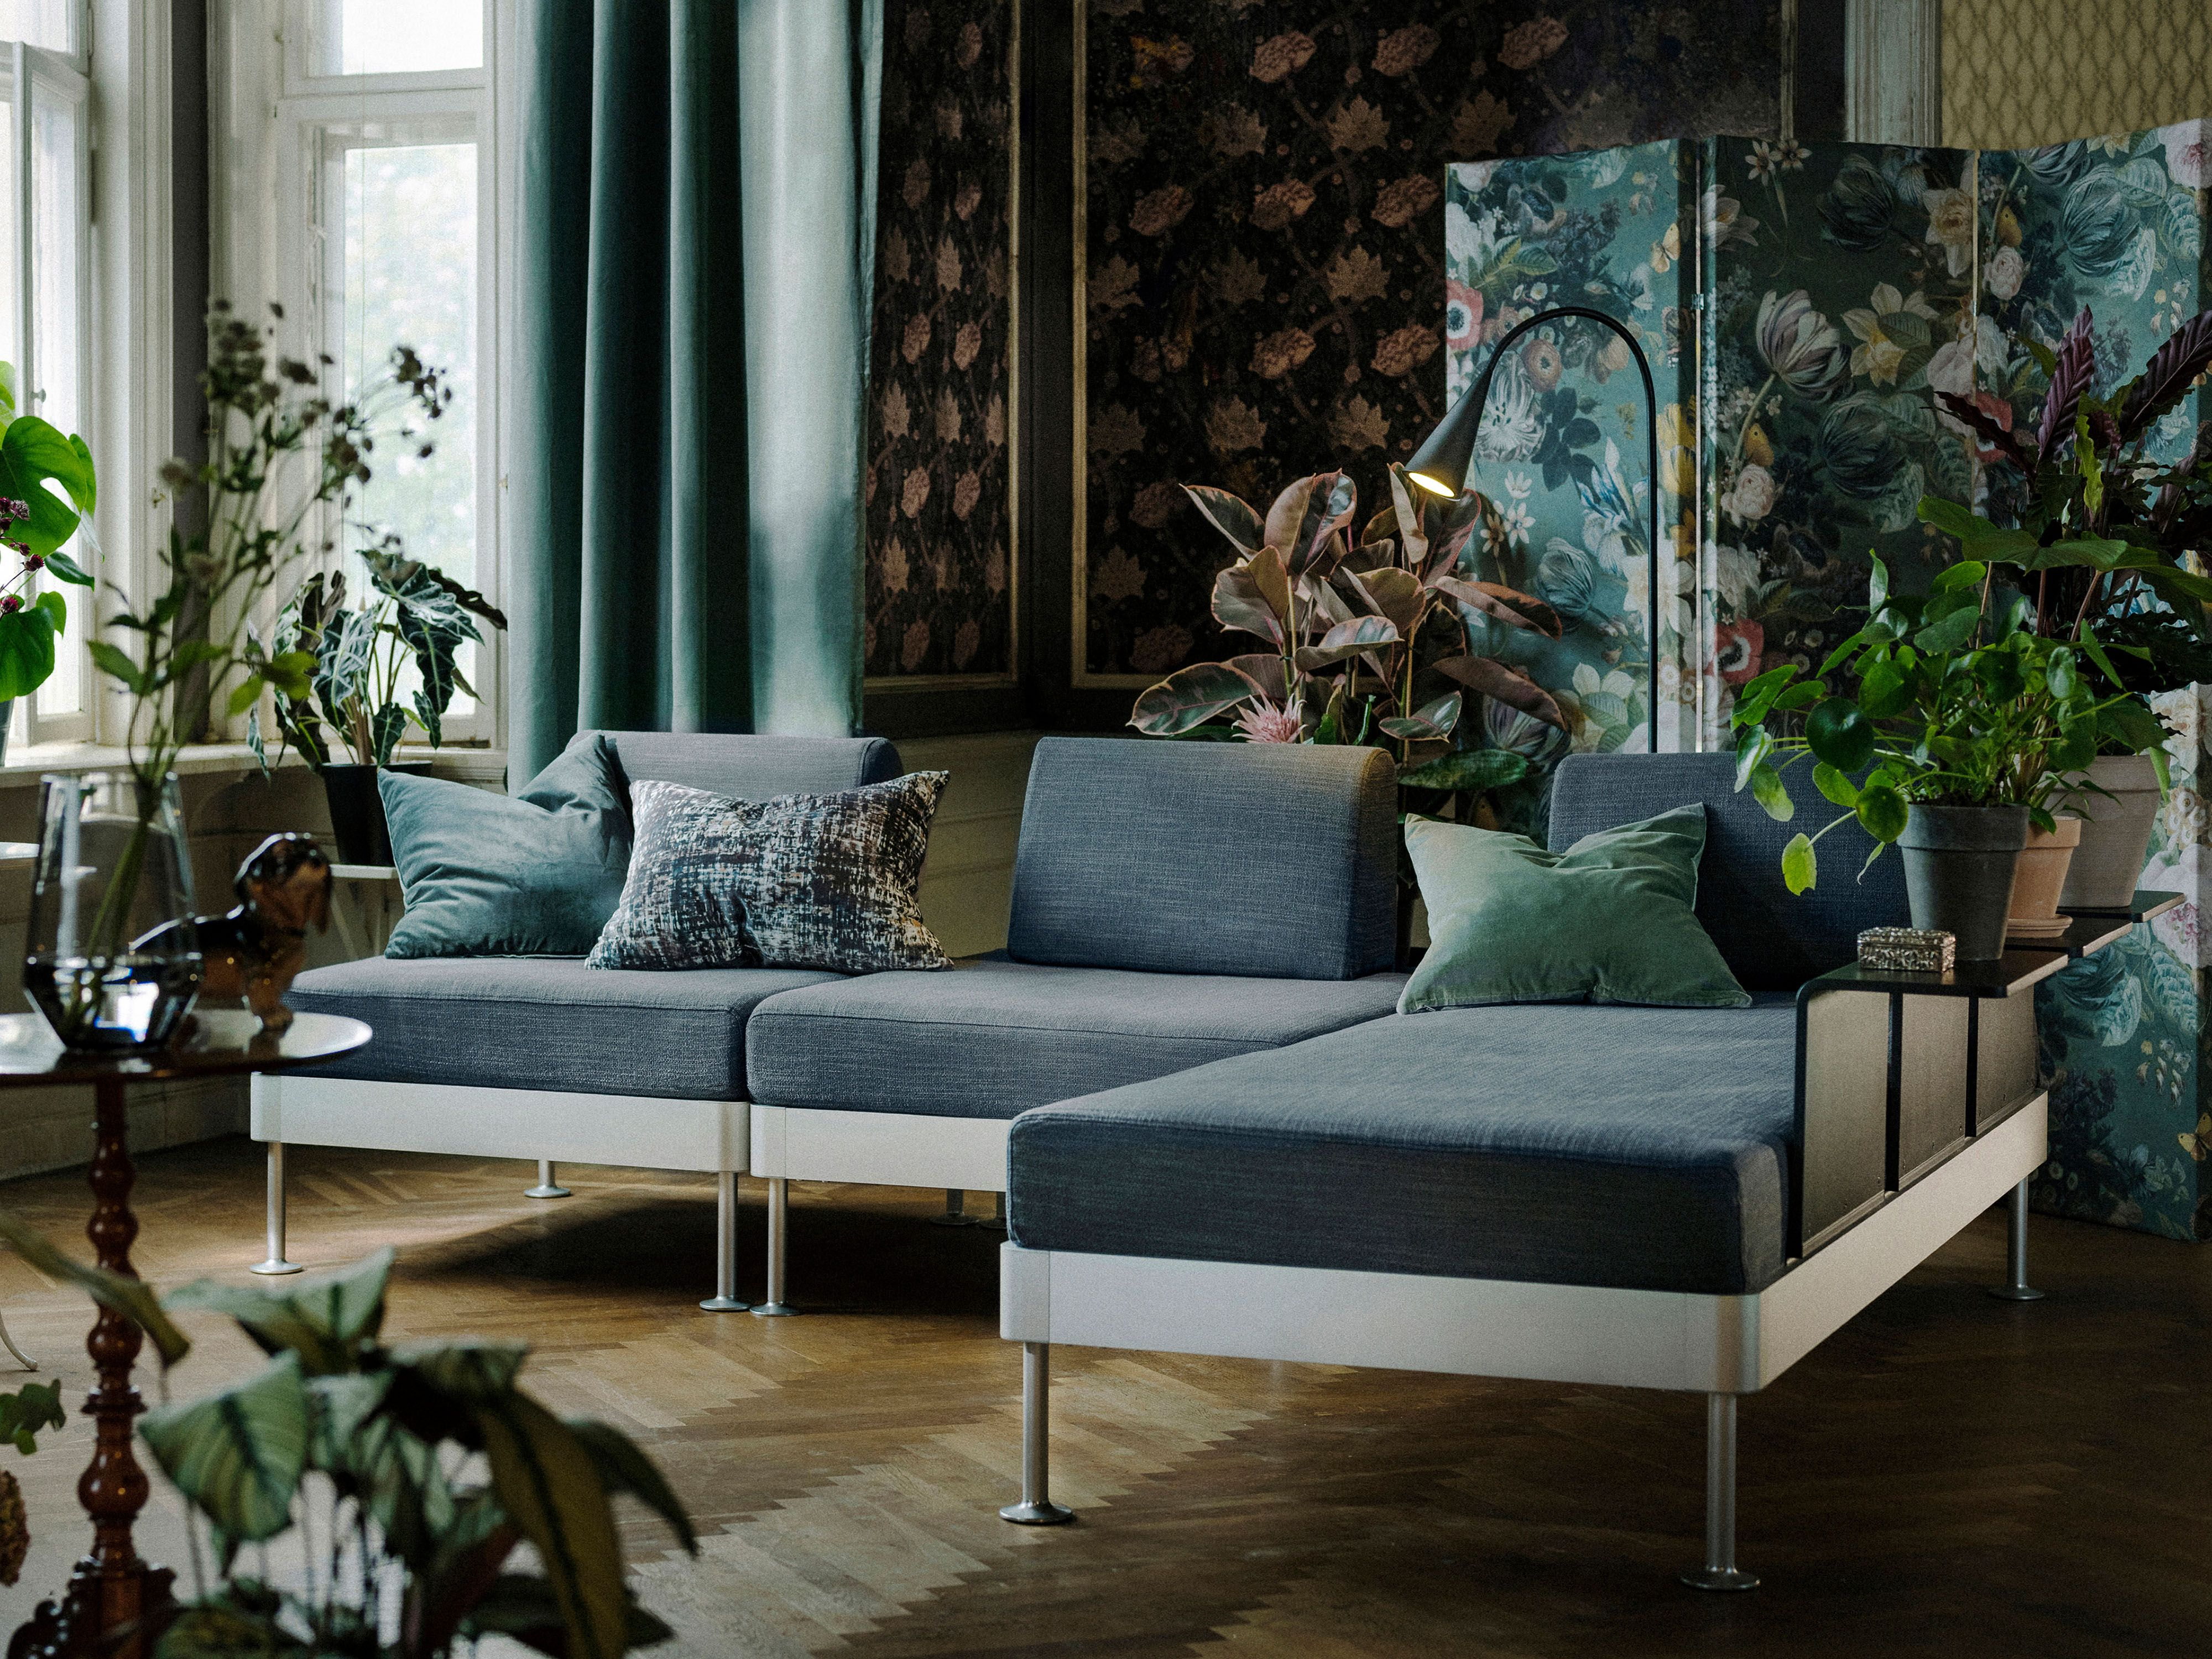 ikea deutschland delaktig ist die neue kollektion mit tom dixon ab februar 2018 wohnzimmer. Black Bedroom Furniture Sets. Home Design Ideas